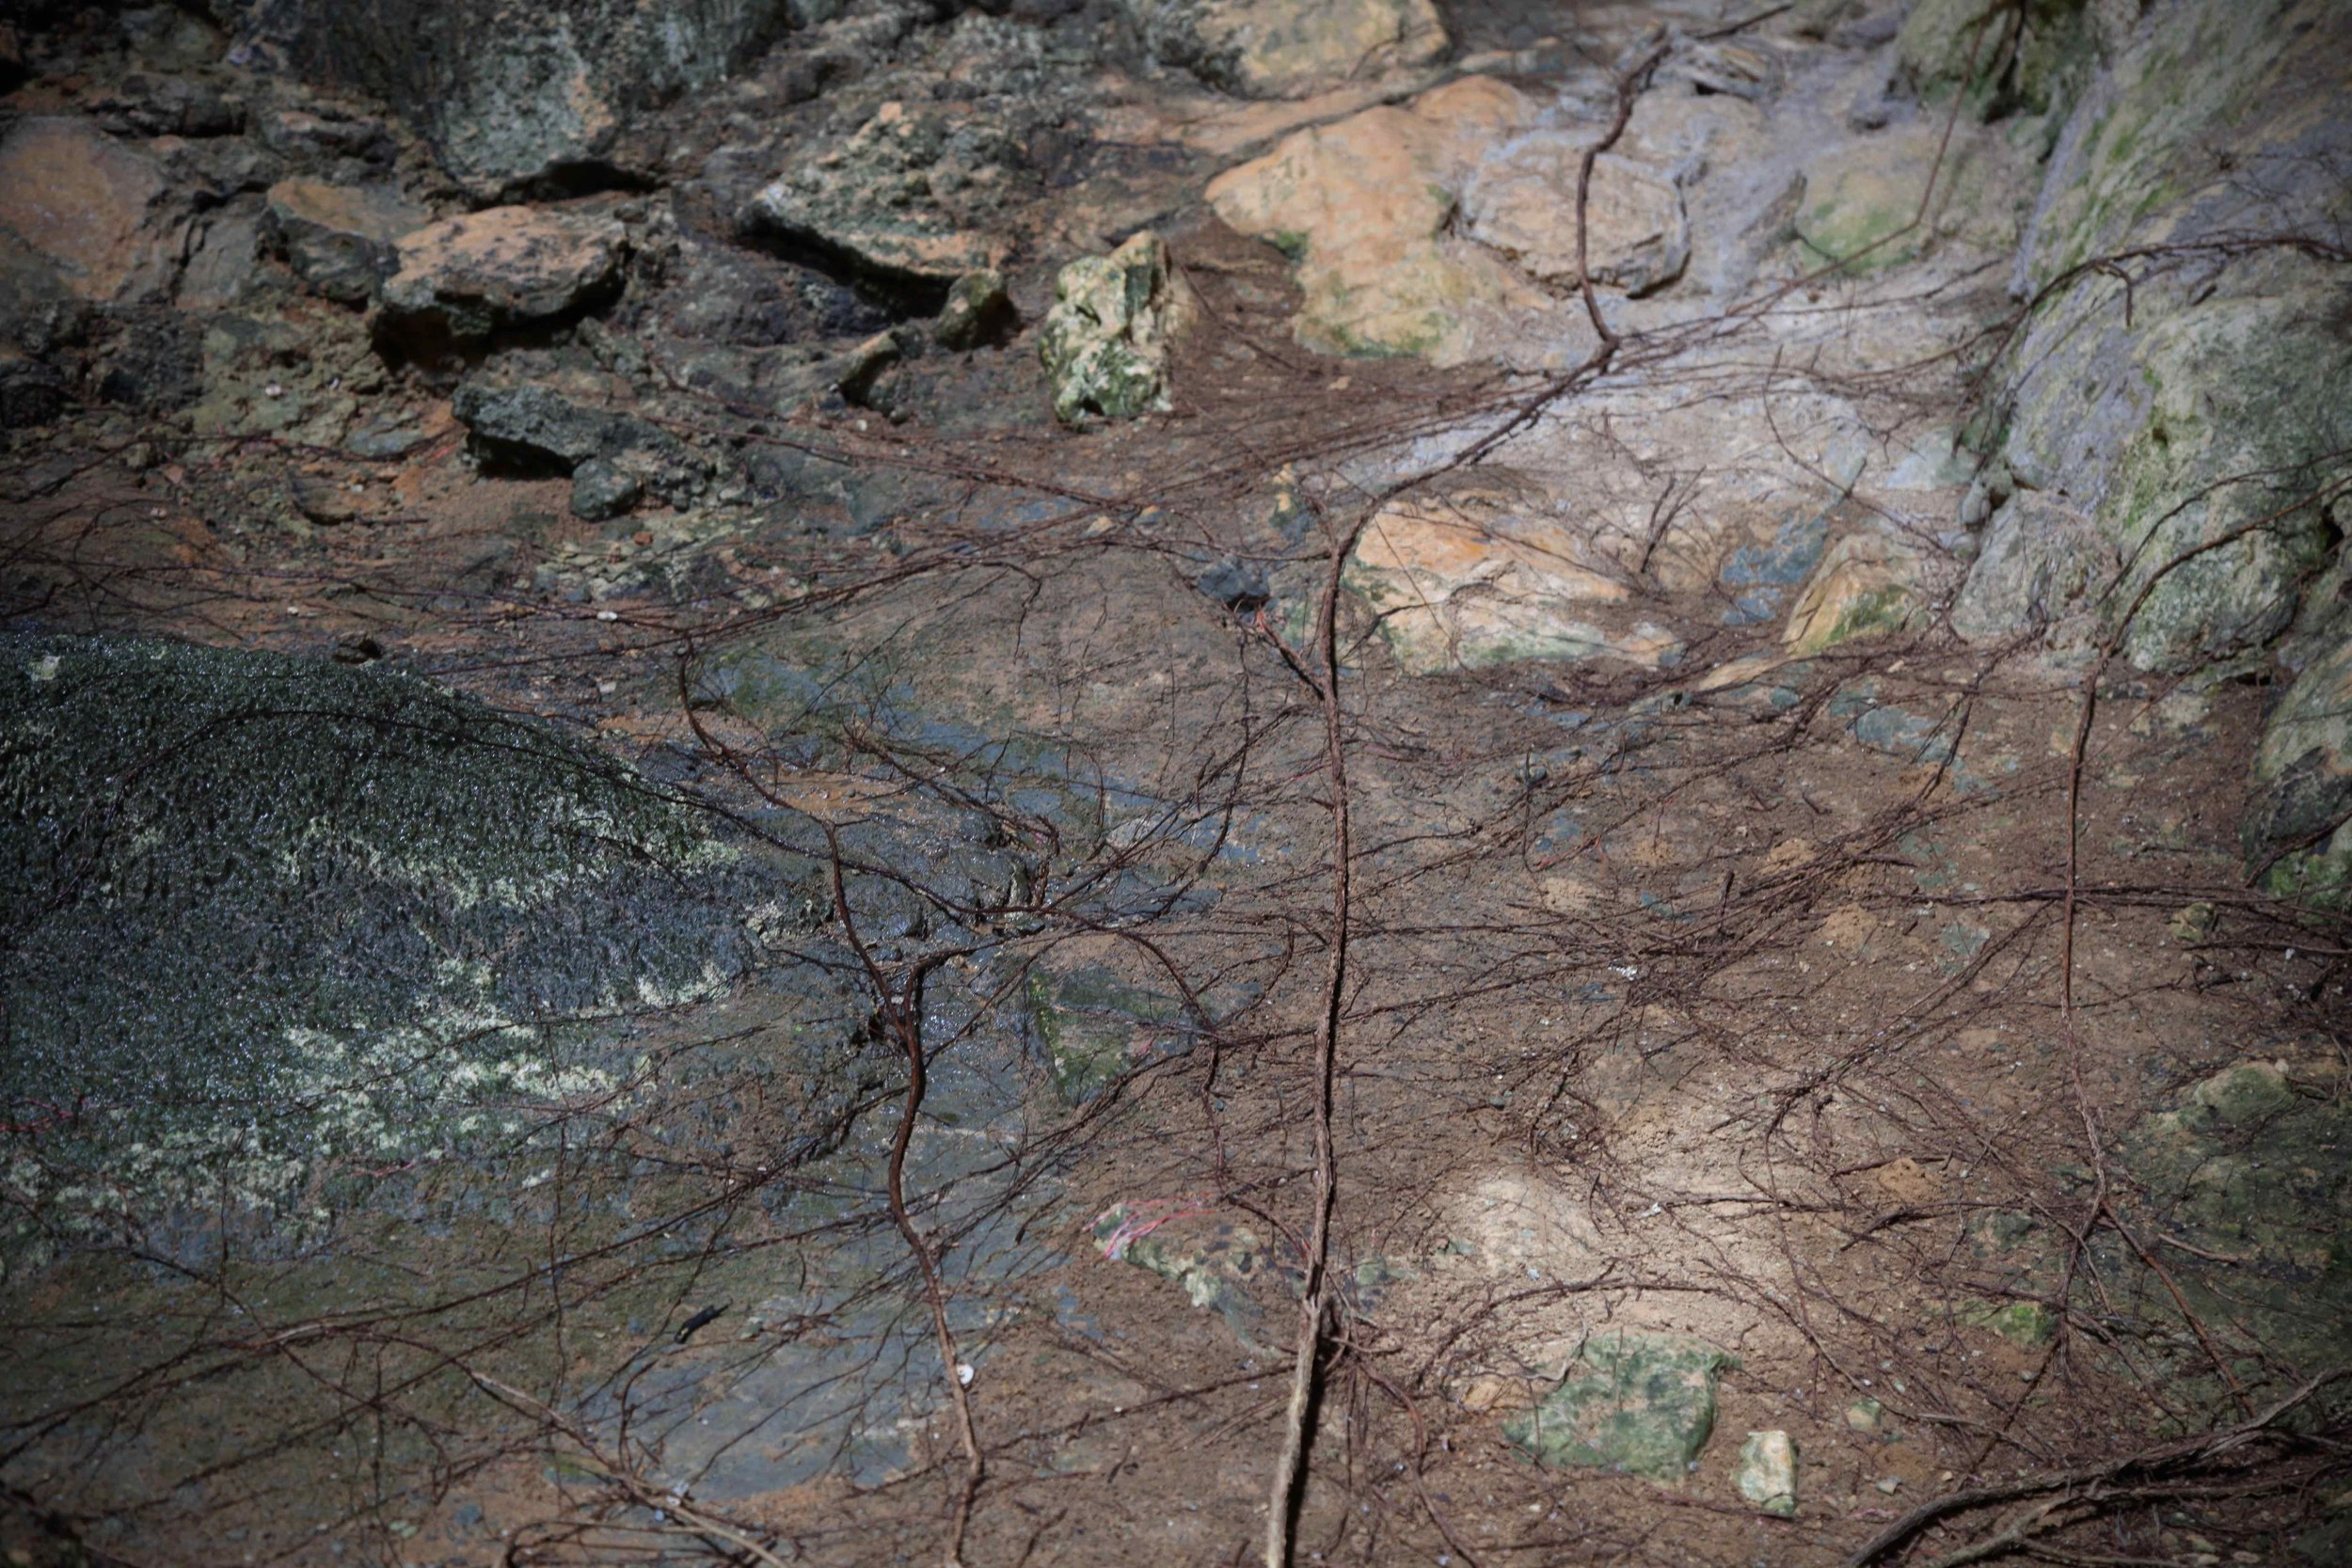 Here's a closer look at the tree roots inside of Royal Arch cave in the national park at Chillagoe.